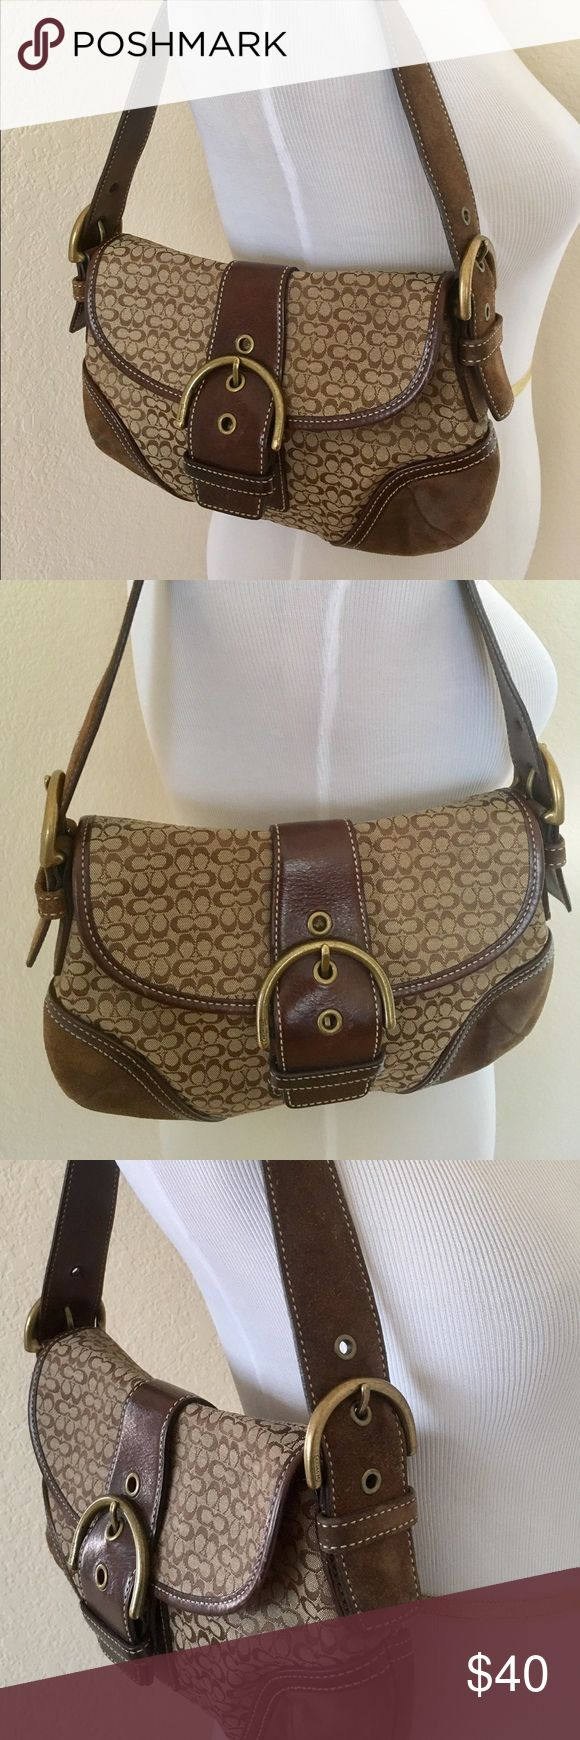 Coach brown monogram bag with suede accents Coach brown monogram bag with suede accents. In good used condition. Inside 2 compartments . Size 10x 8 . Suede shows some wear , one scratch on leather strap in back . In overall good condition, it has a lot of use to it left . Clean inside . Coach Bags Shoulder Bags